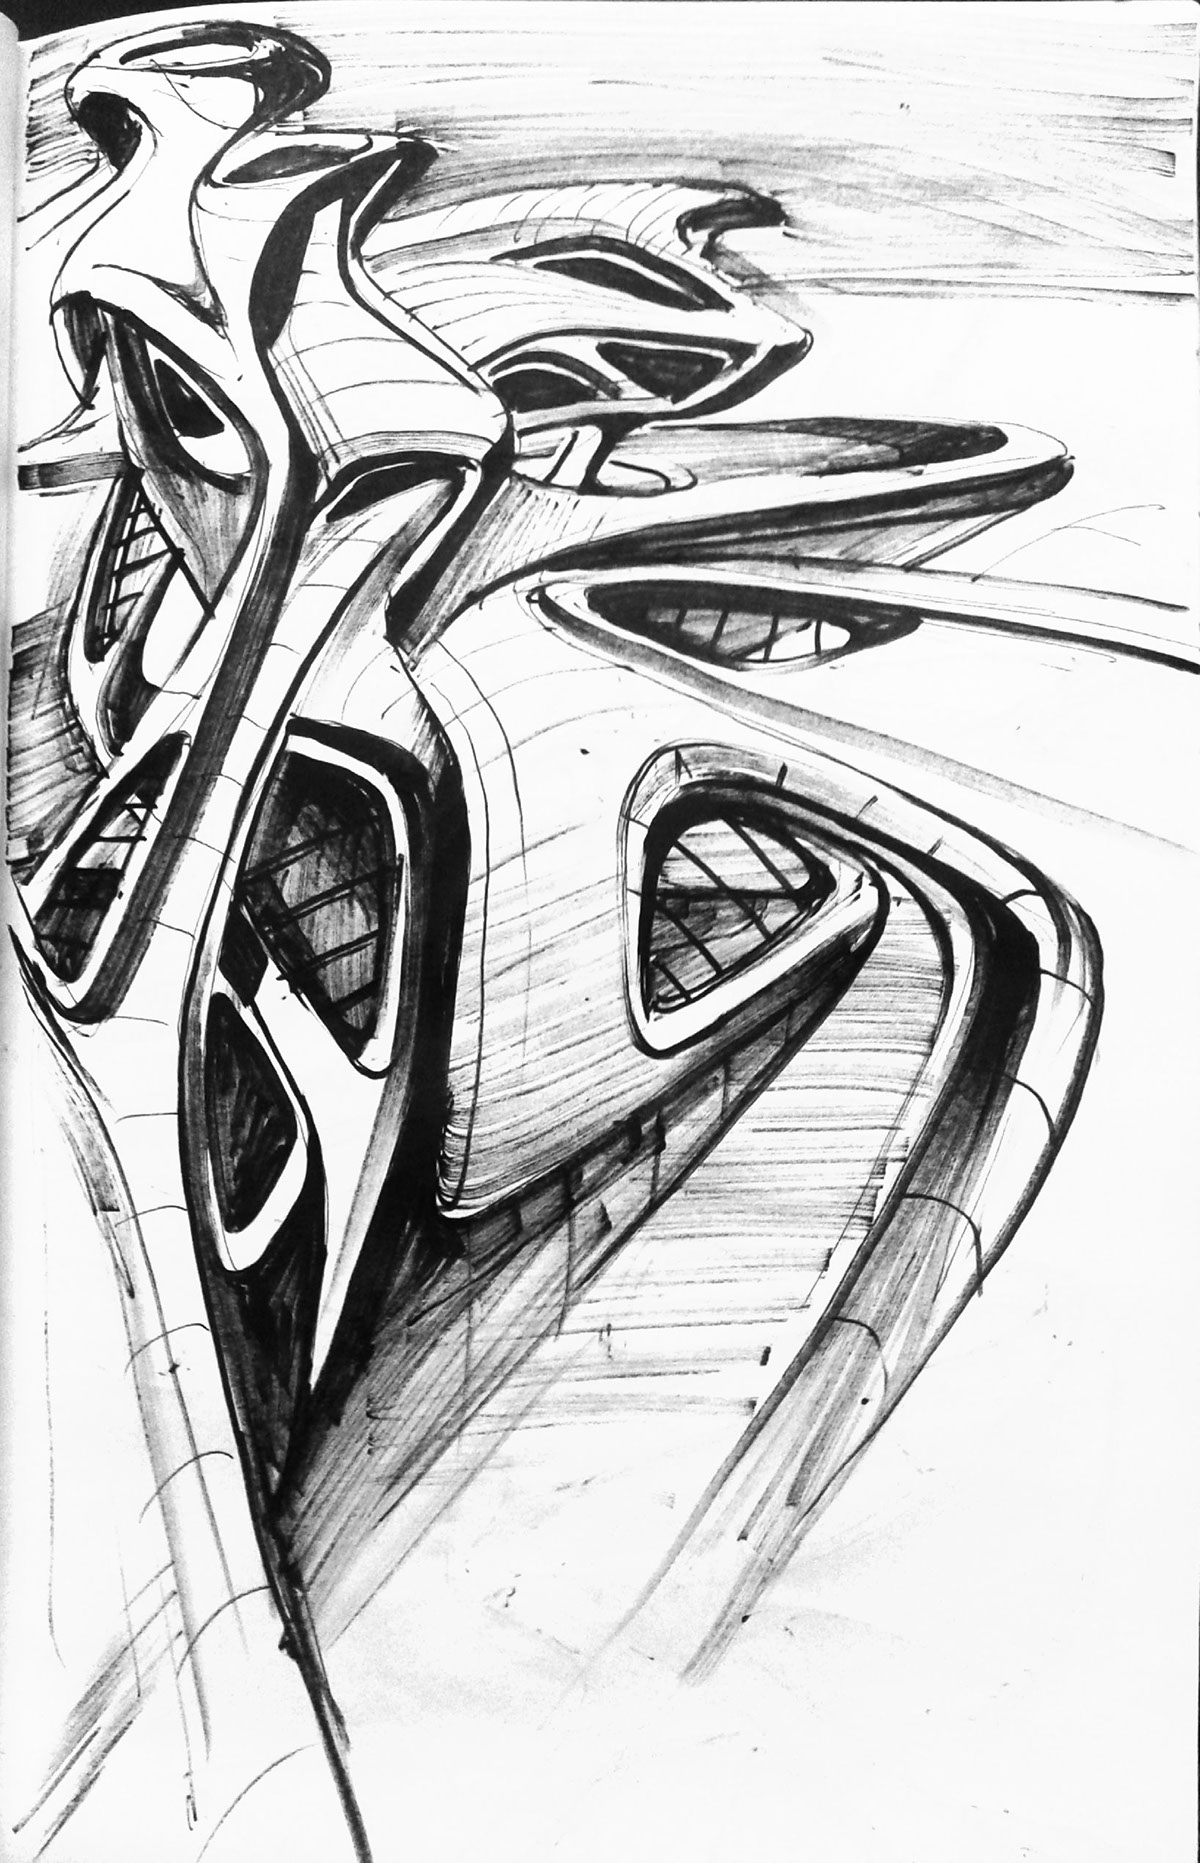 Architectural sketches ideas on Behance